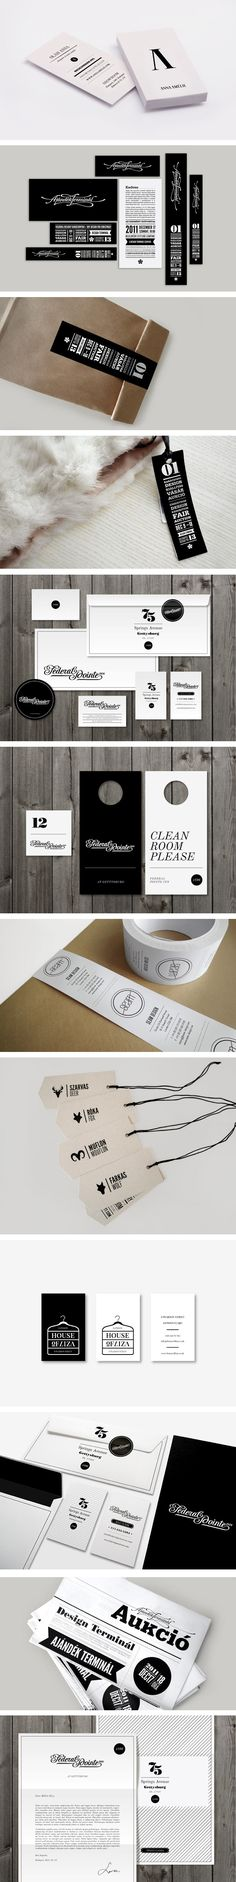 A lovely collection of branding work by Kiss Miklos. #Tags and #labels in black and white #packaging PD